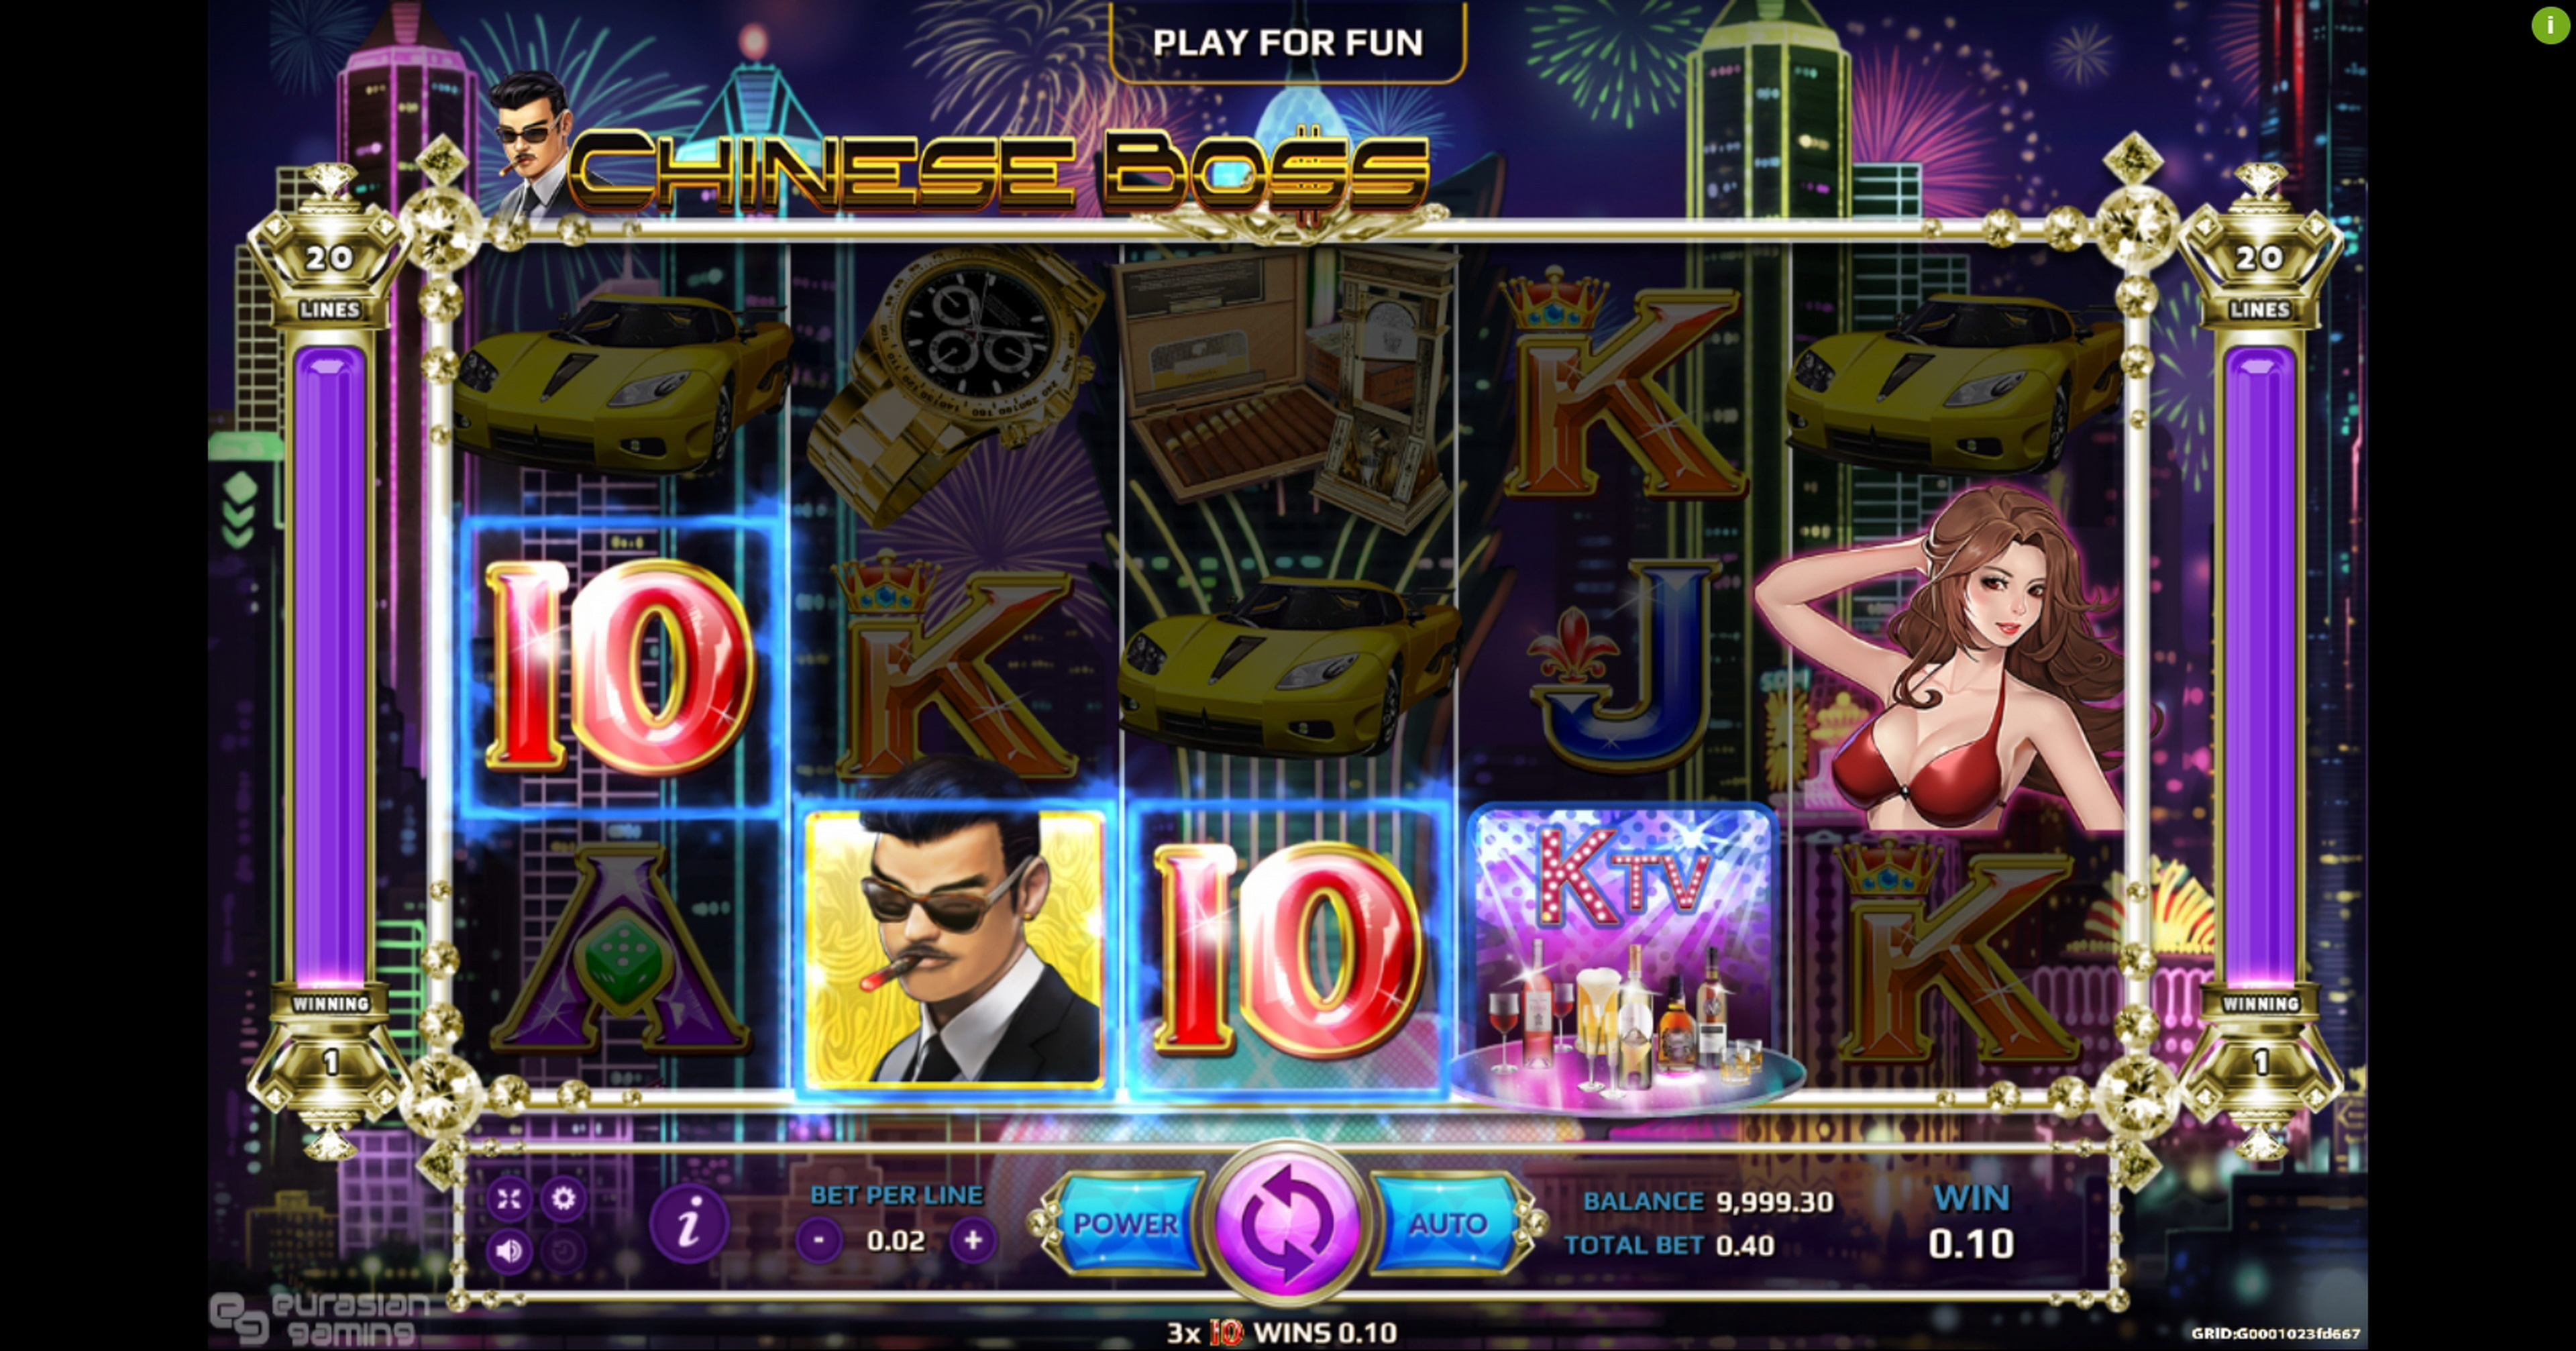 Win Money in Chinese Boss Free Slot Game by EAgaming